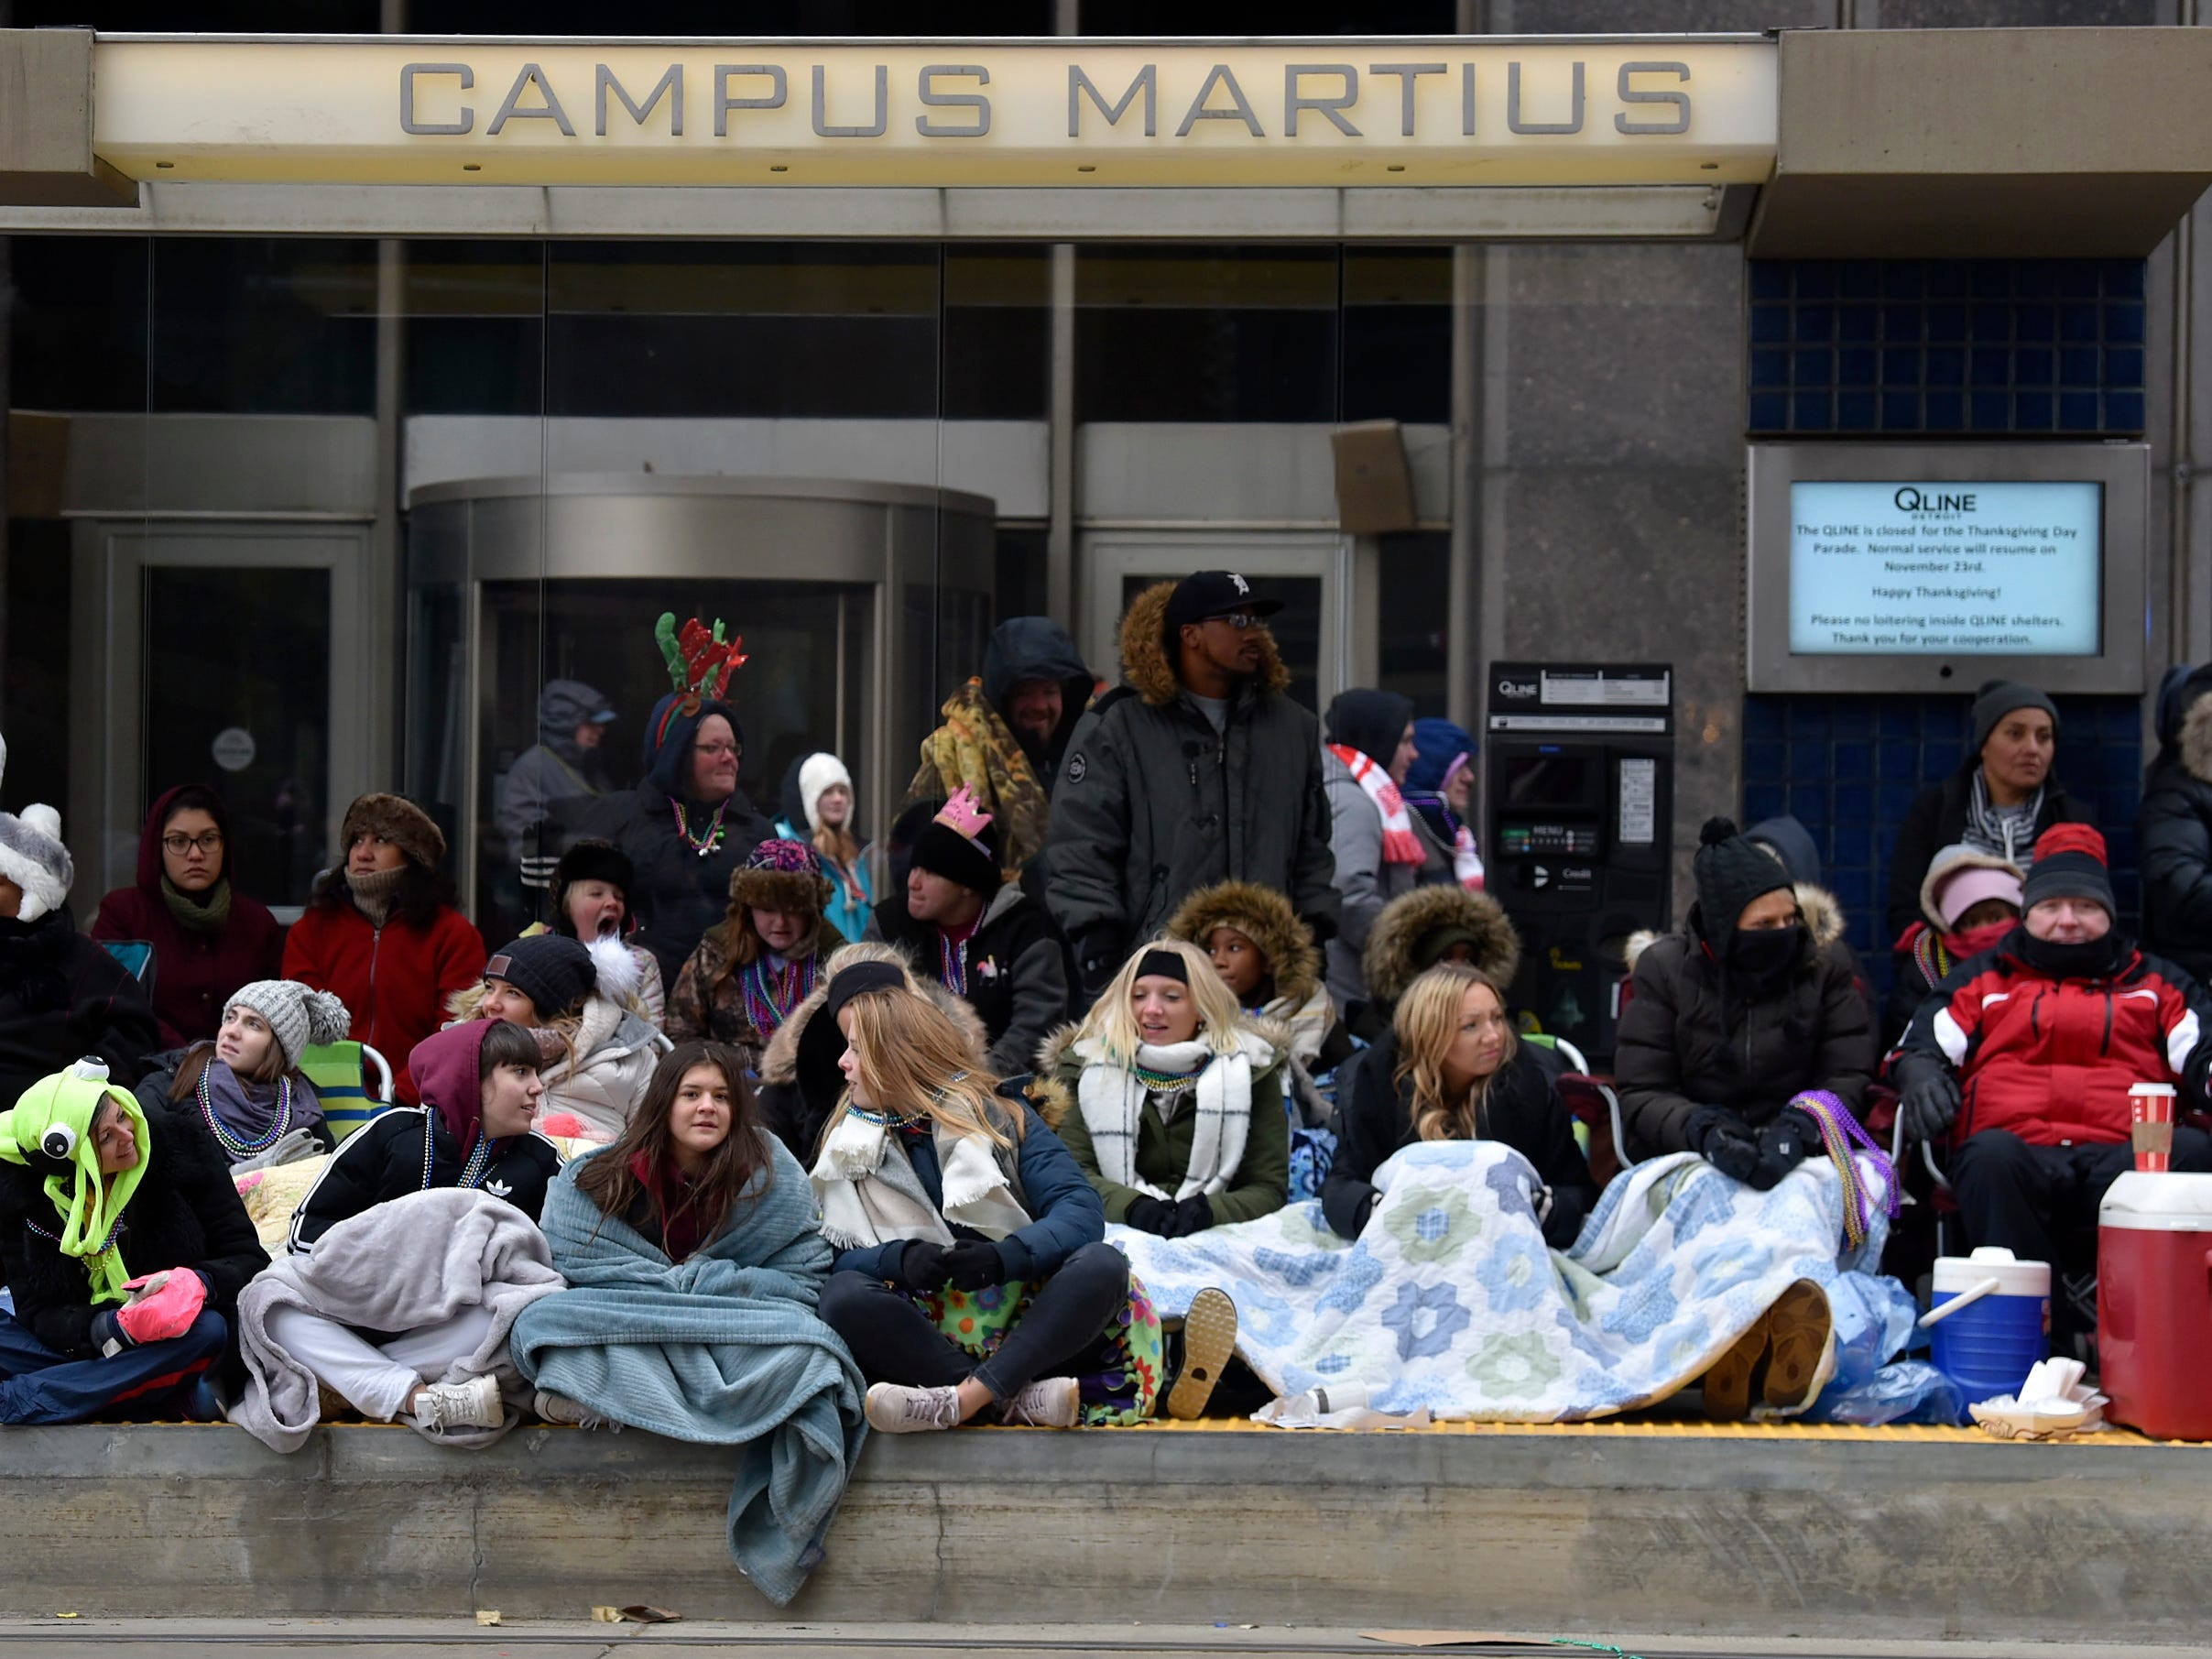 People keep warm under blankets at the Campus Martius Q Line stop.